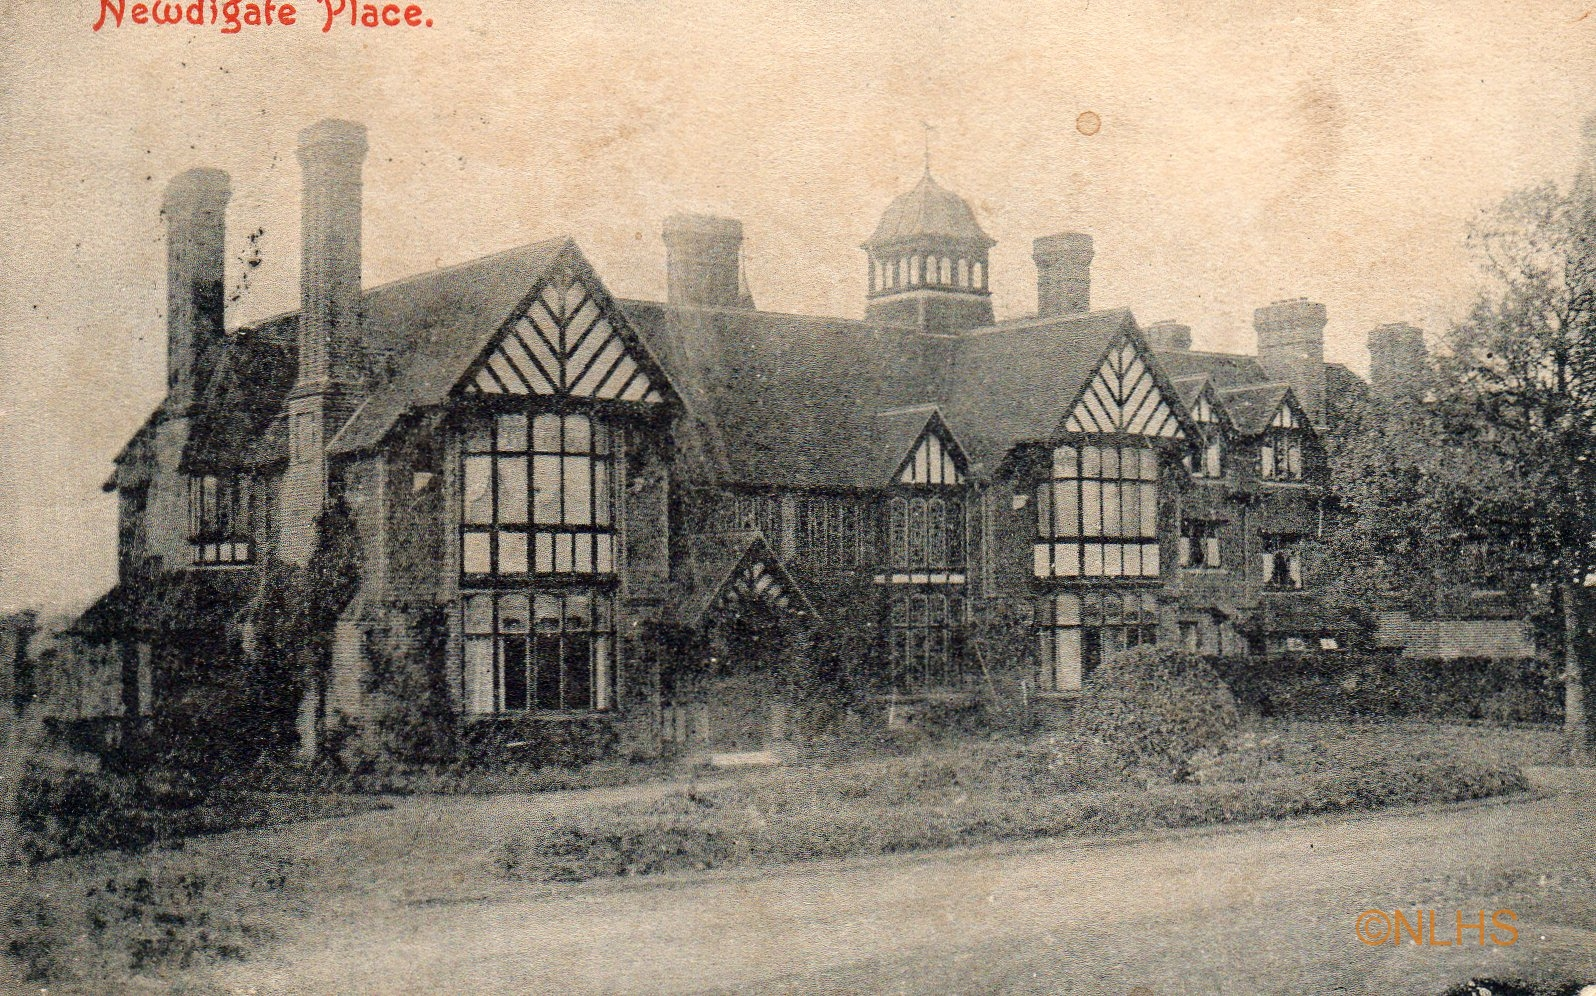 Newdigate Place - Postmark 1907